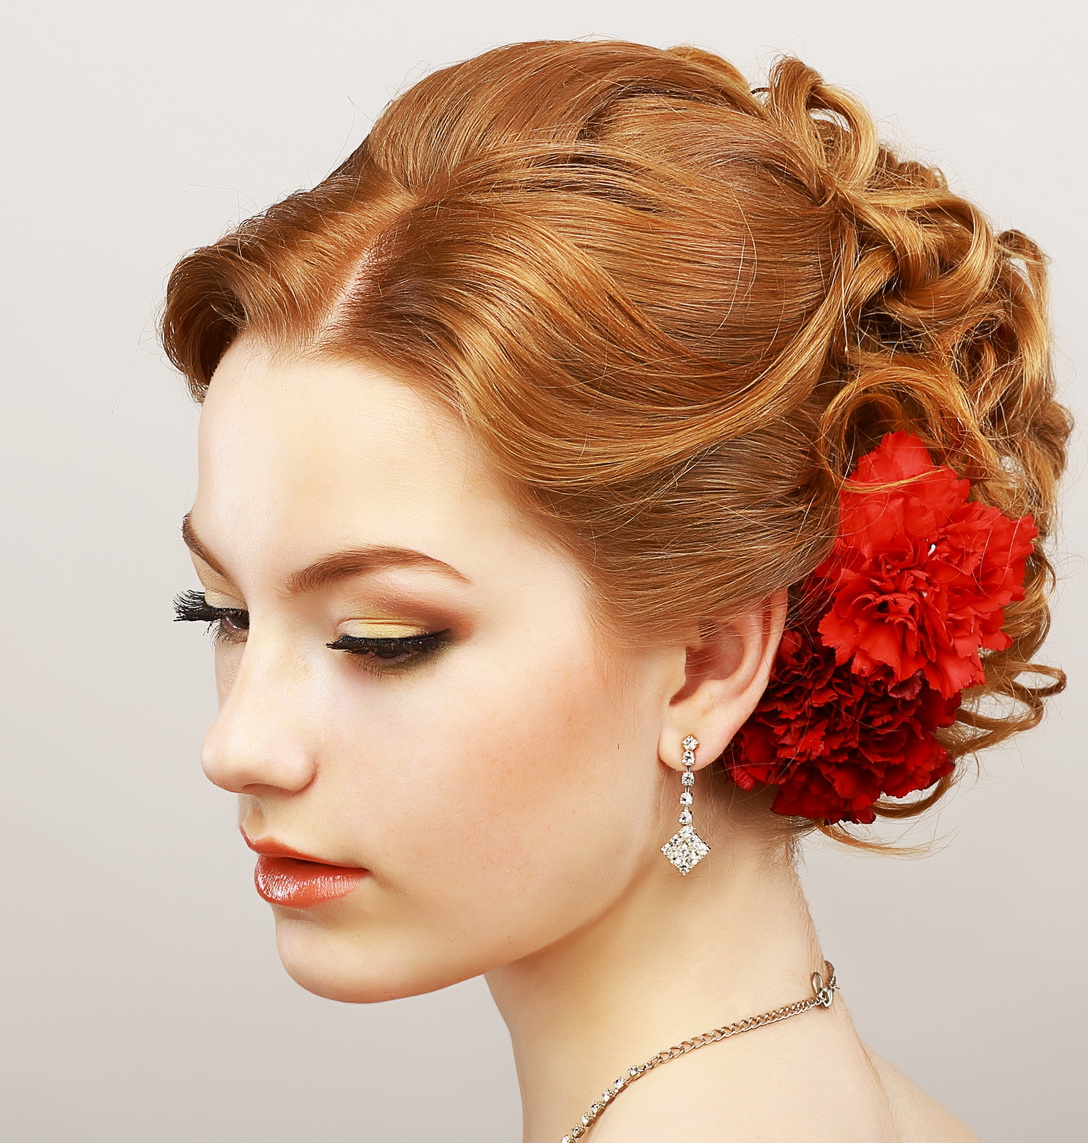 16 Easy Prom Hairstyles For Short And Medium Length Hair In Short Hairstyles For Prom (View 17 of 25)